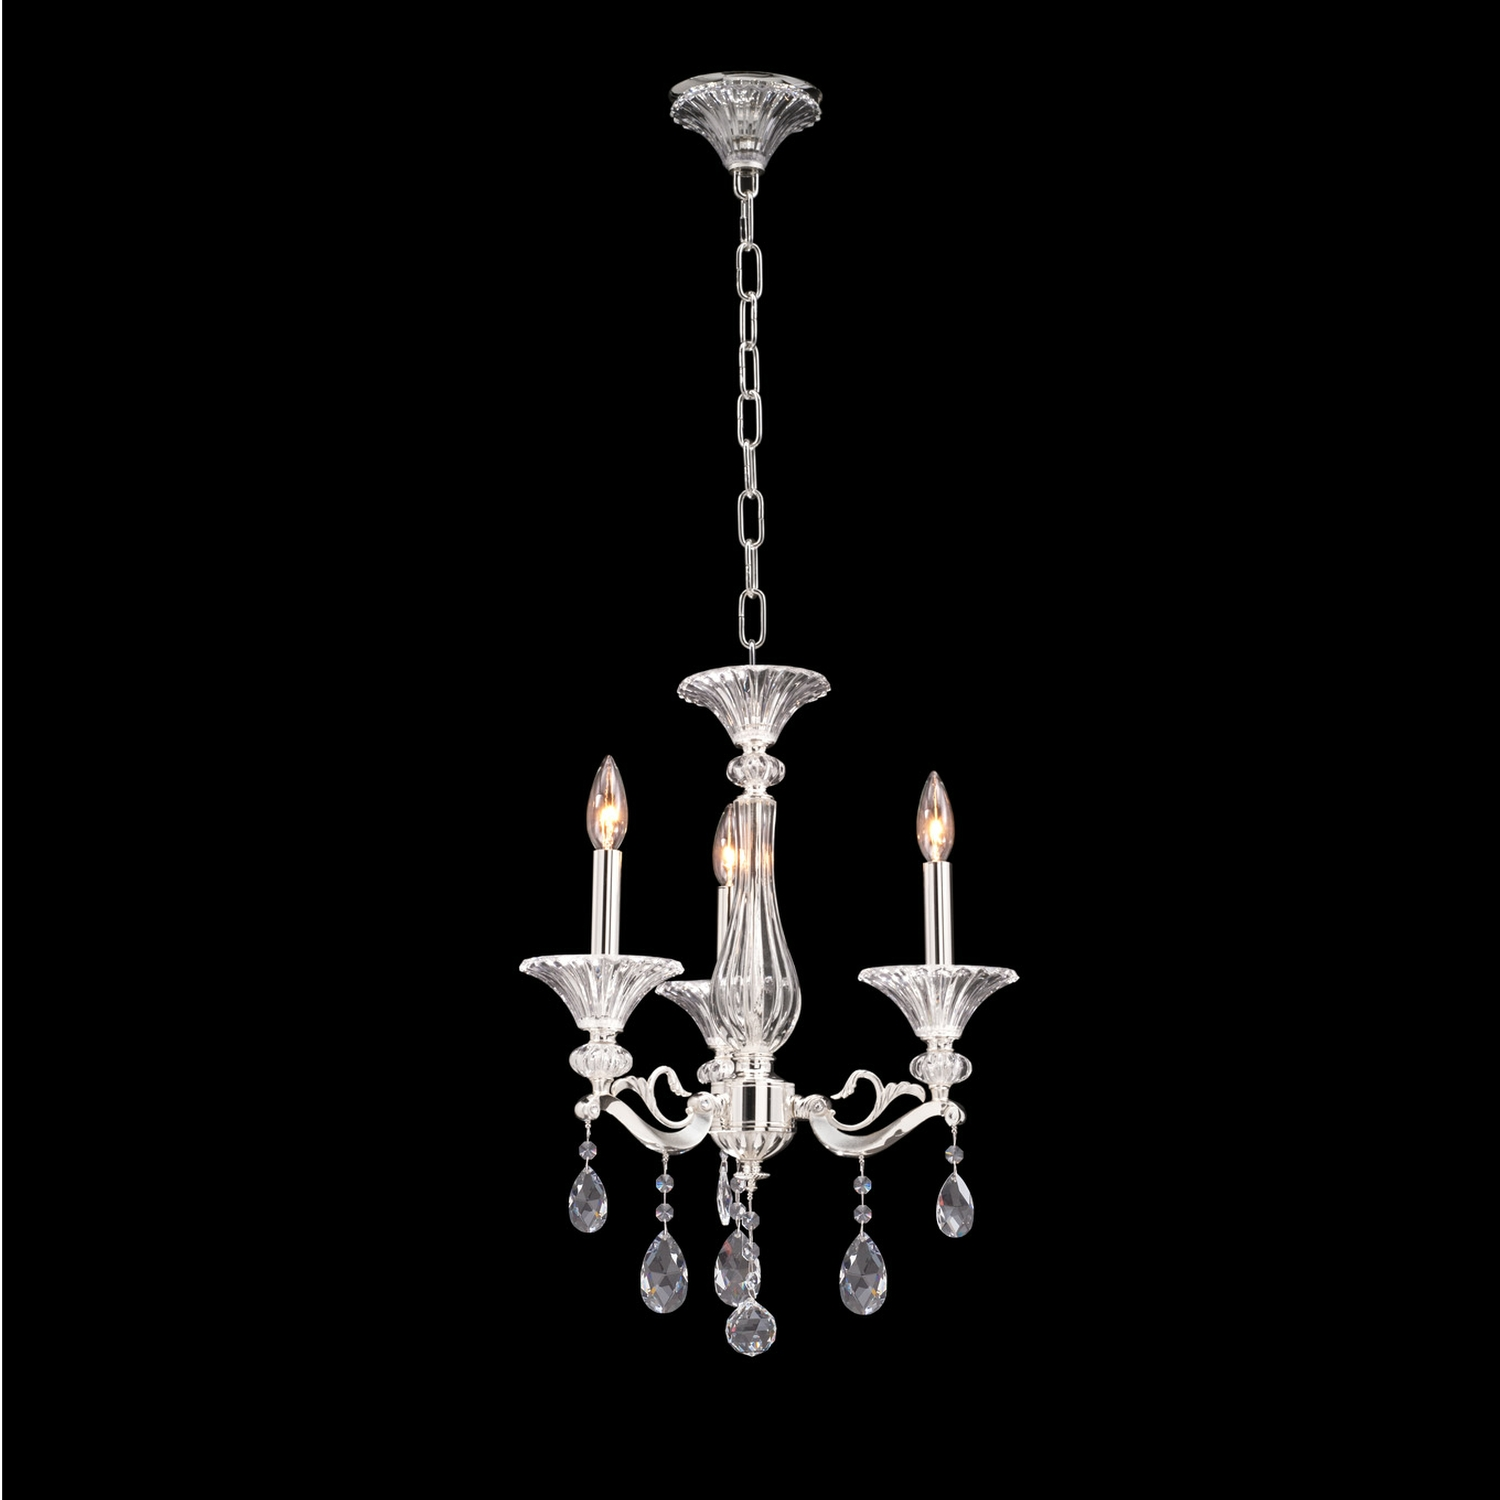 Vasari 3 Light Chandelier